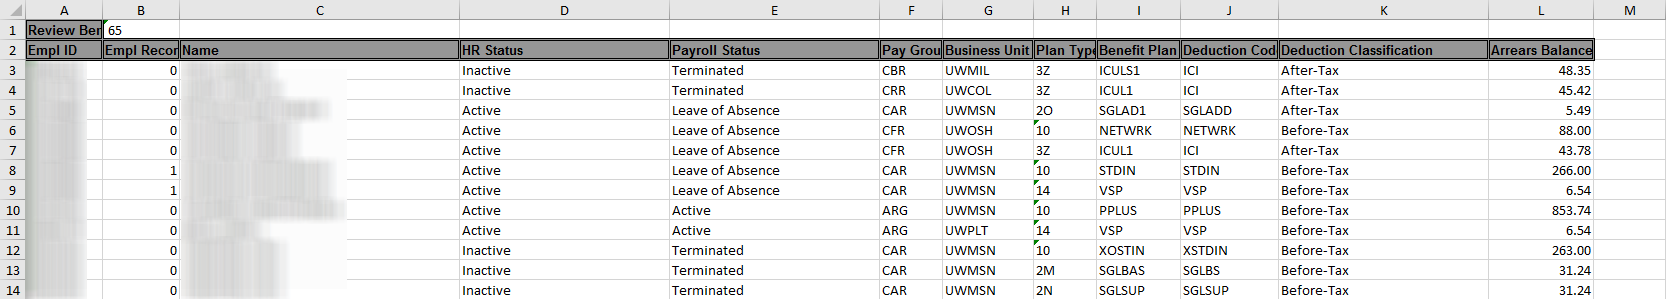 UW_BN_REVIEW_ARREARS Excel Spreadsheet